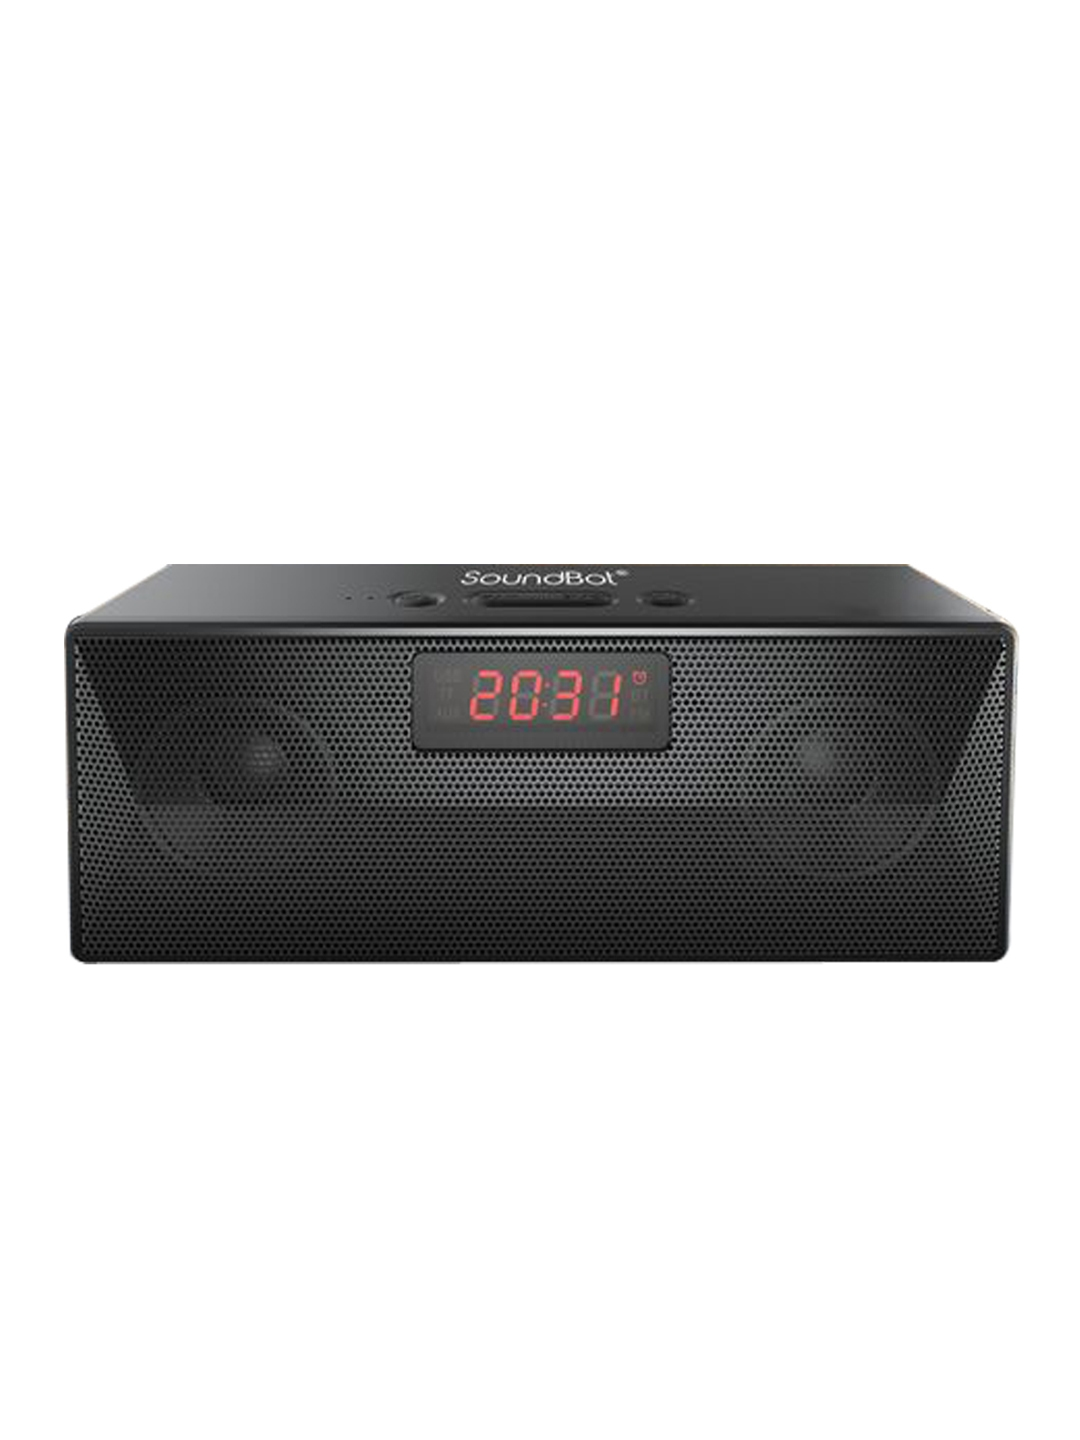 2a22d5dedca SoundBot SB1023 FM Radio Alarm Clock Bluetooth Speaker